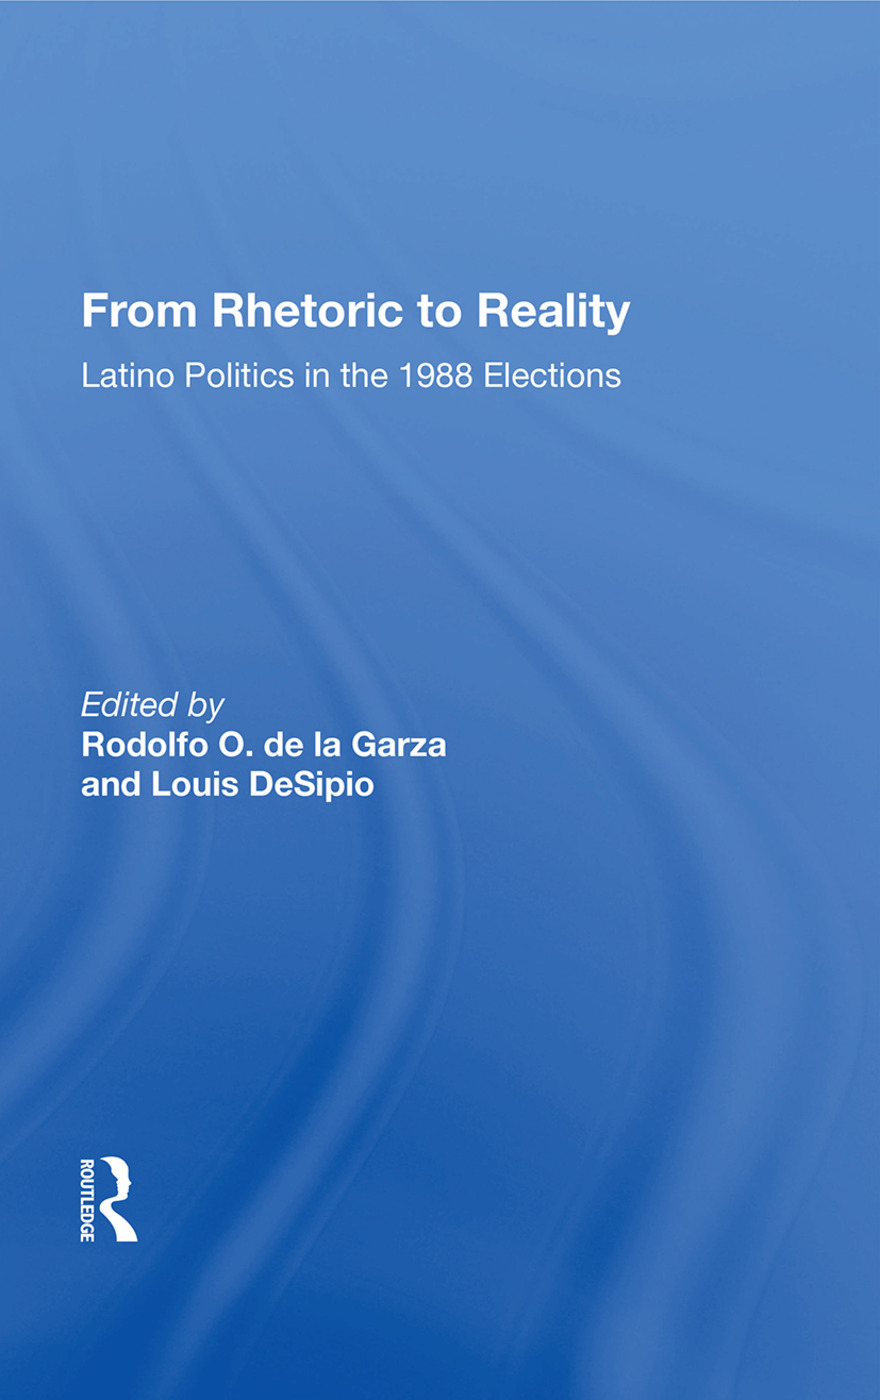 From Rhetoric to Reality: Latino Politics in the 1988 Elections book cover